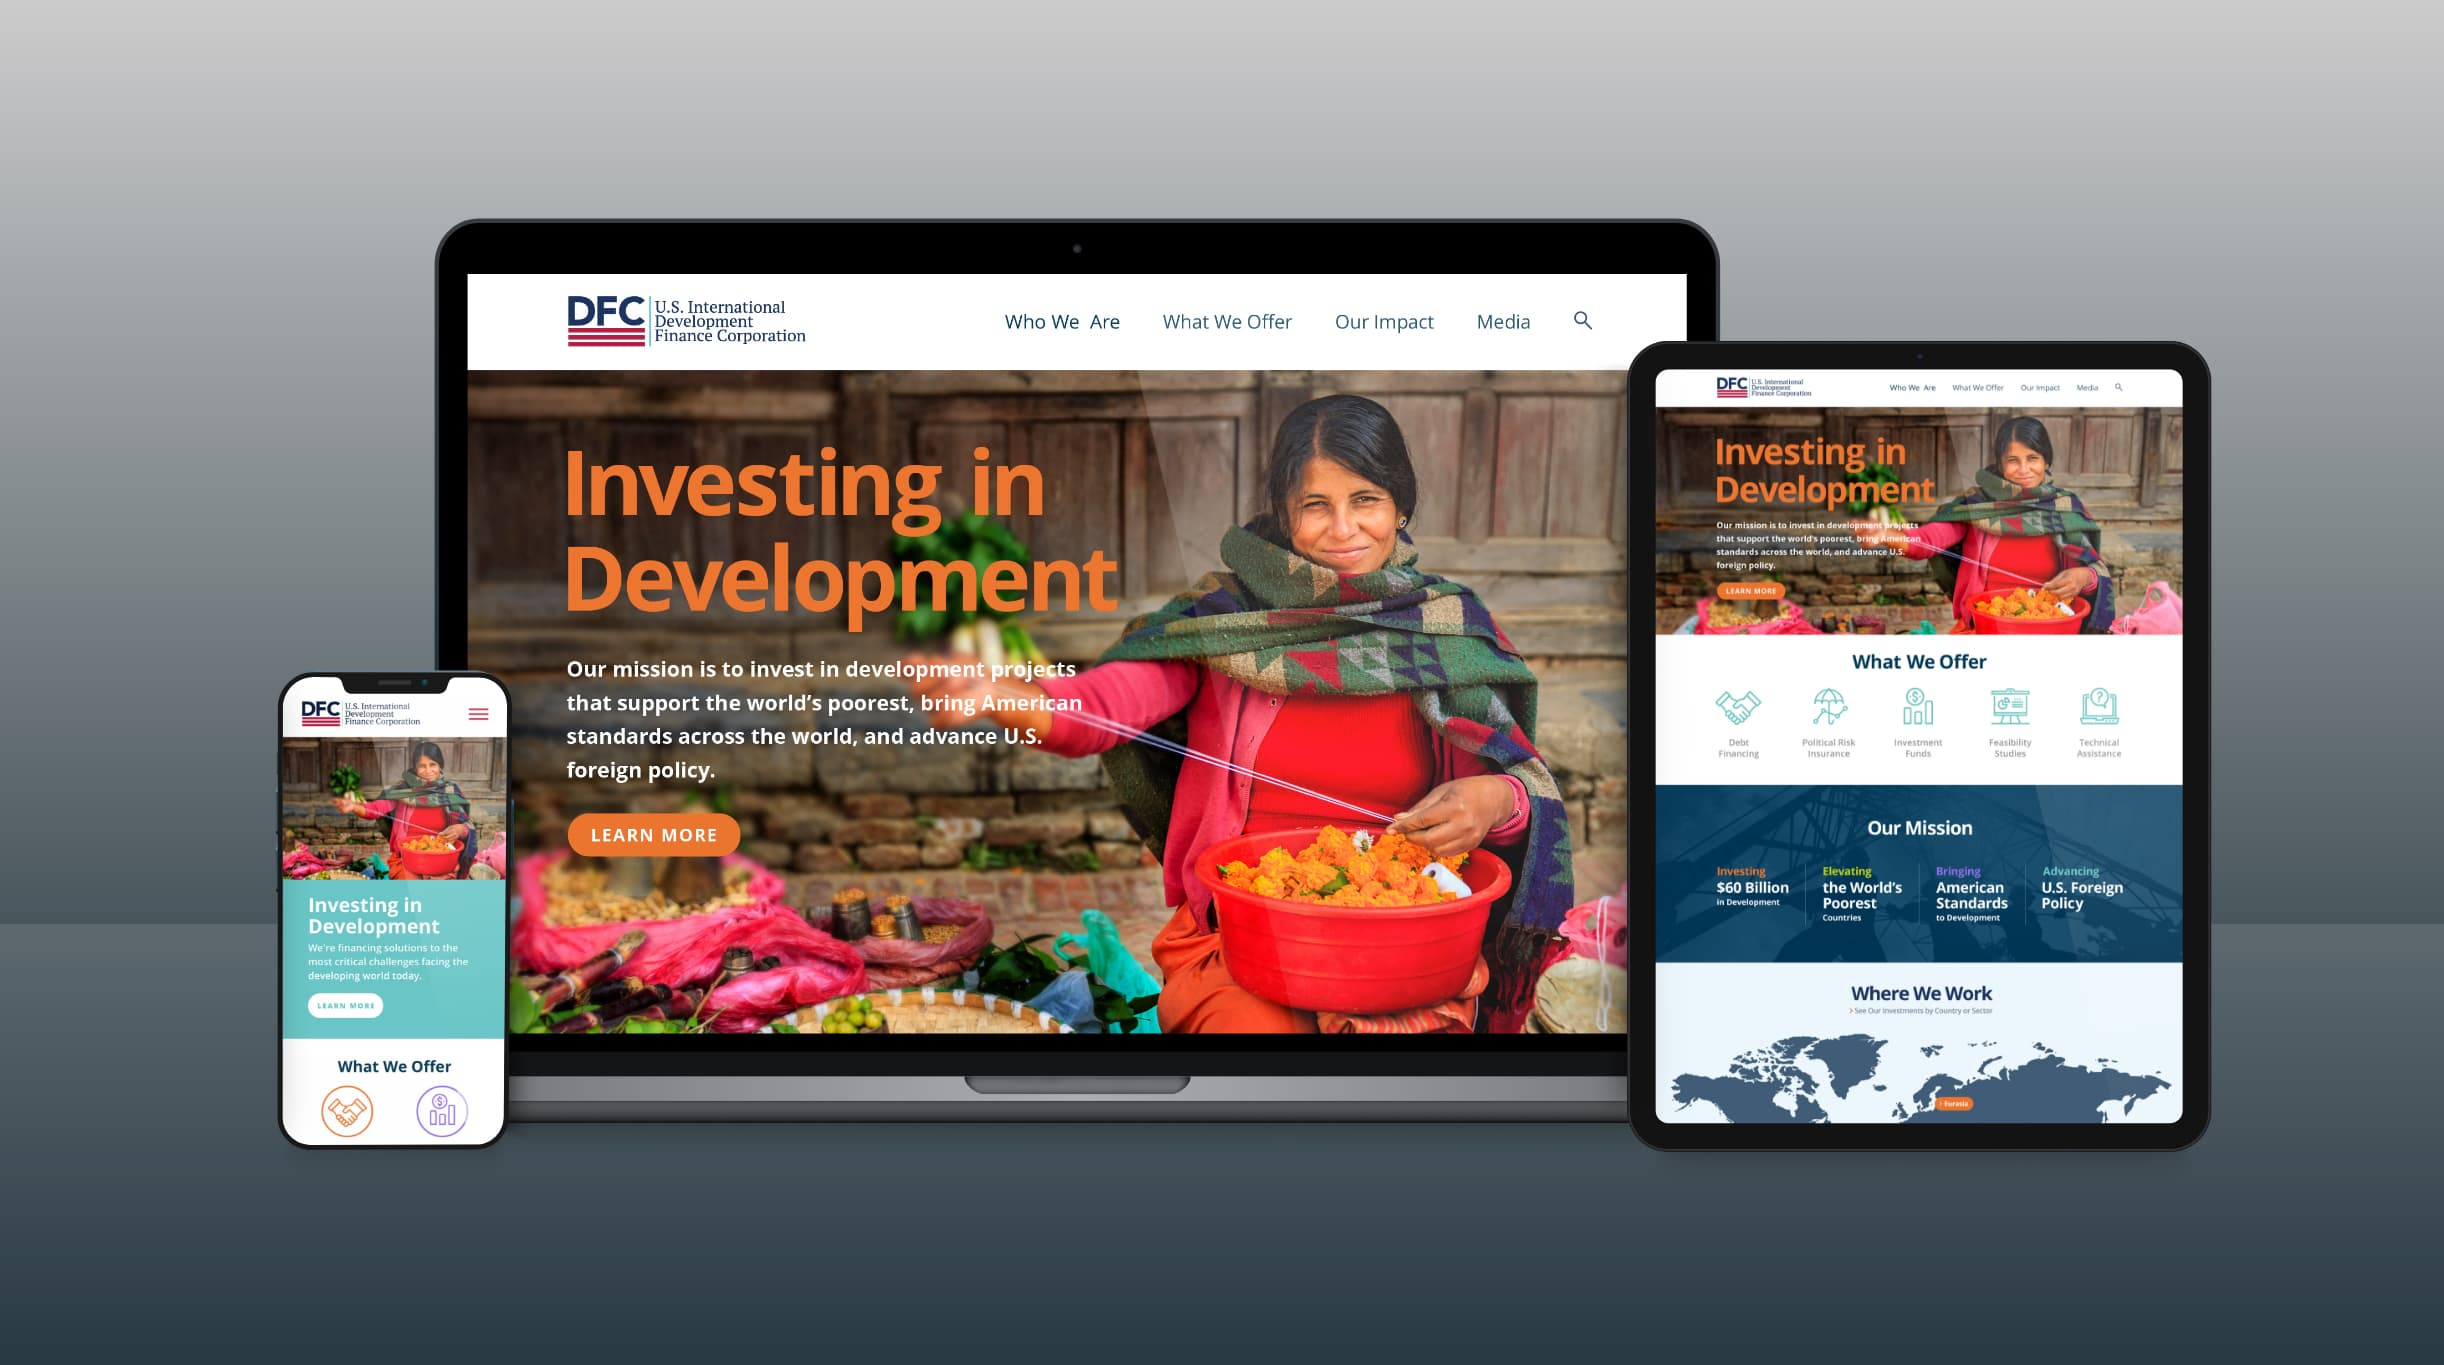 Our design and web team designed and developed a robust website which involved intensive collaboration across different teams to ensure the site was fast, secure, user-friendly, and consistent with DFC's branding strategy.